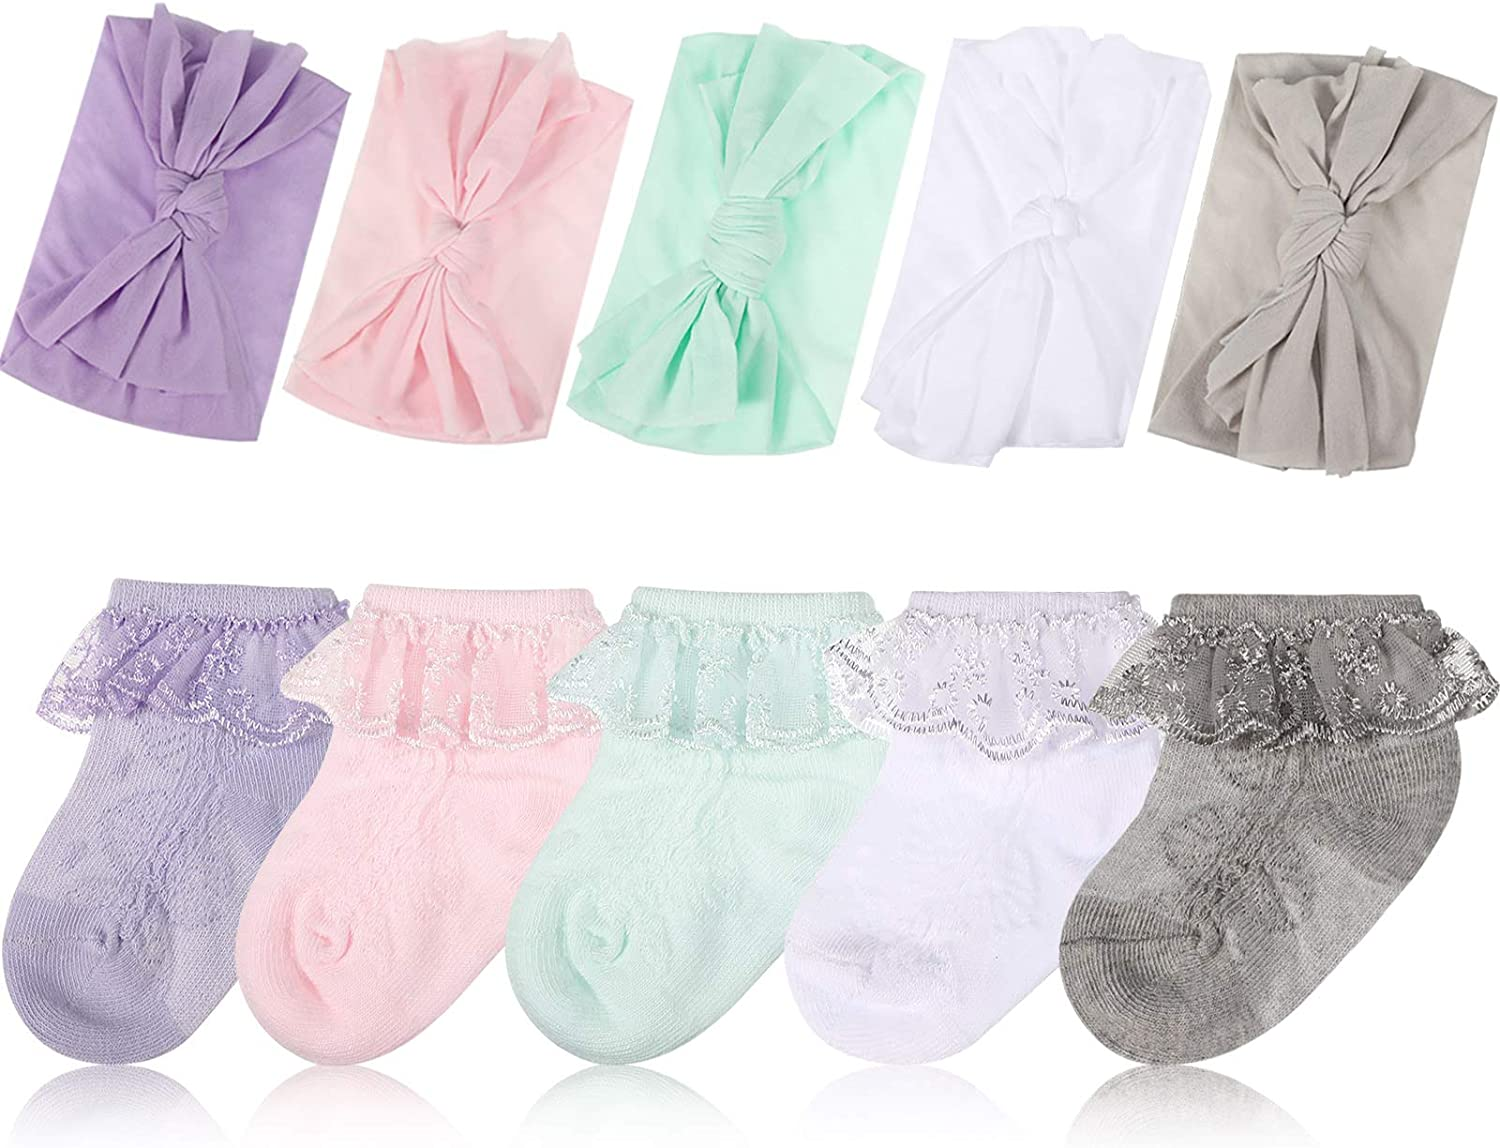 5 Pairs Baby Girls Eyelet Frilly Lace Ankle Socks with 5 Pieces Nylon Toddler Headbands for 3-12 Months, 5 Colors